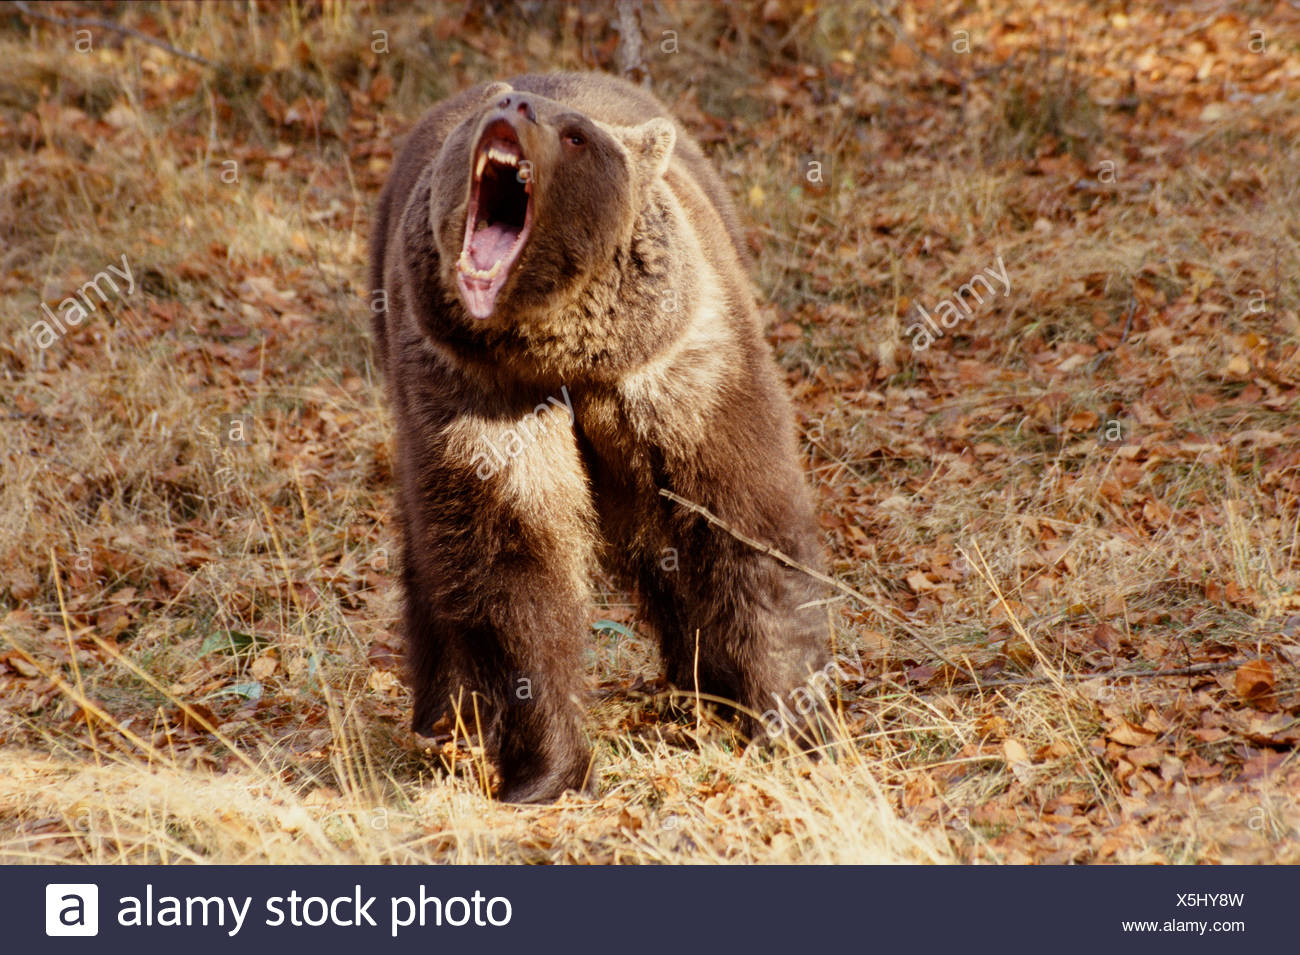 Brown Bear Roaring showing jaws & teeth Captive Montana Winter - Stock Image